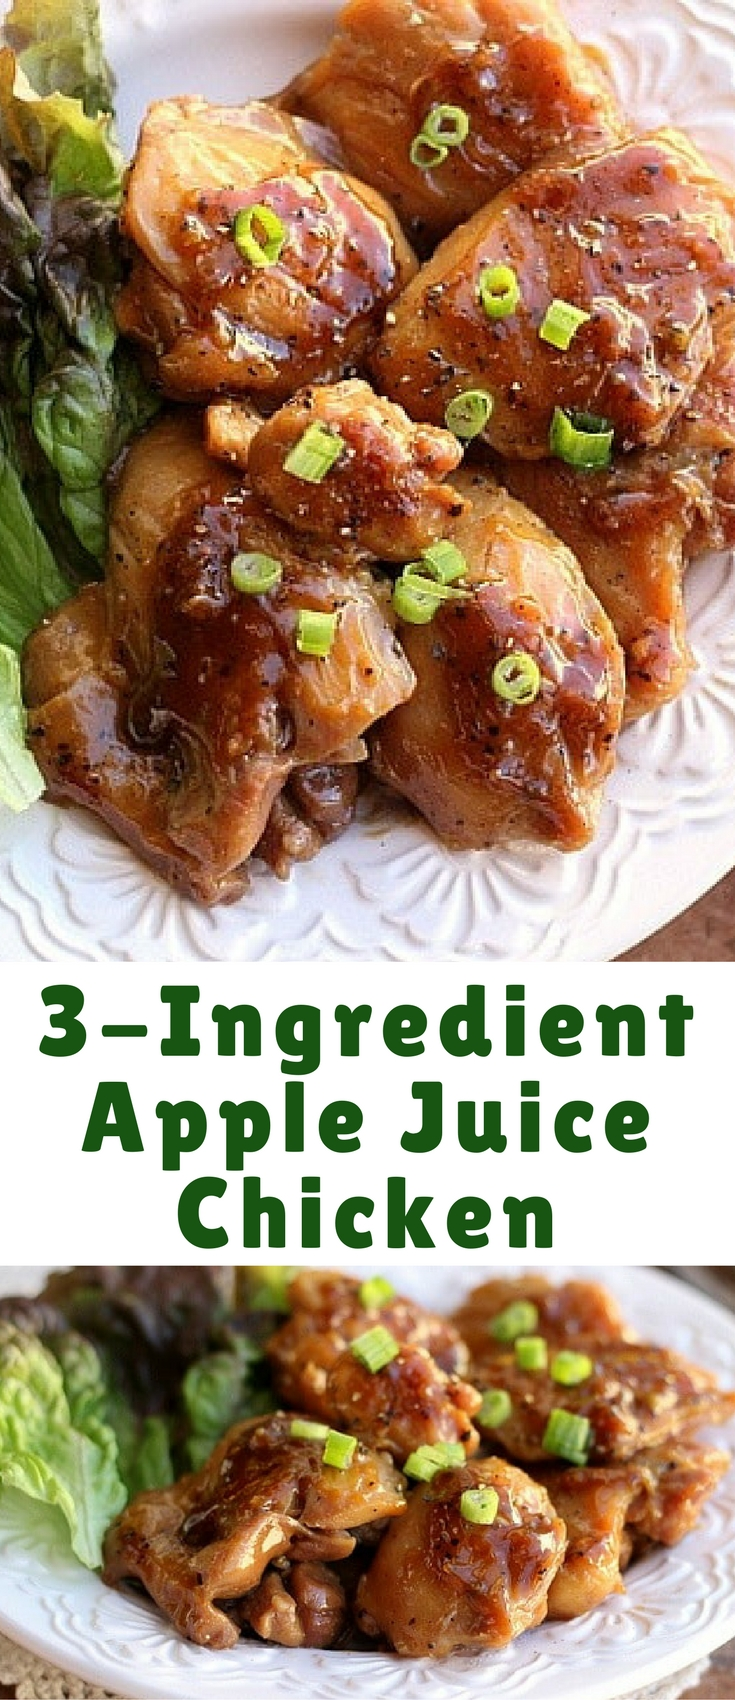 Delicious chicken thighs that are covered with a sweet, syrupy sauce made from apple juice!